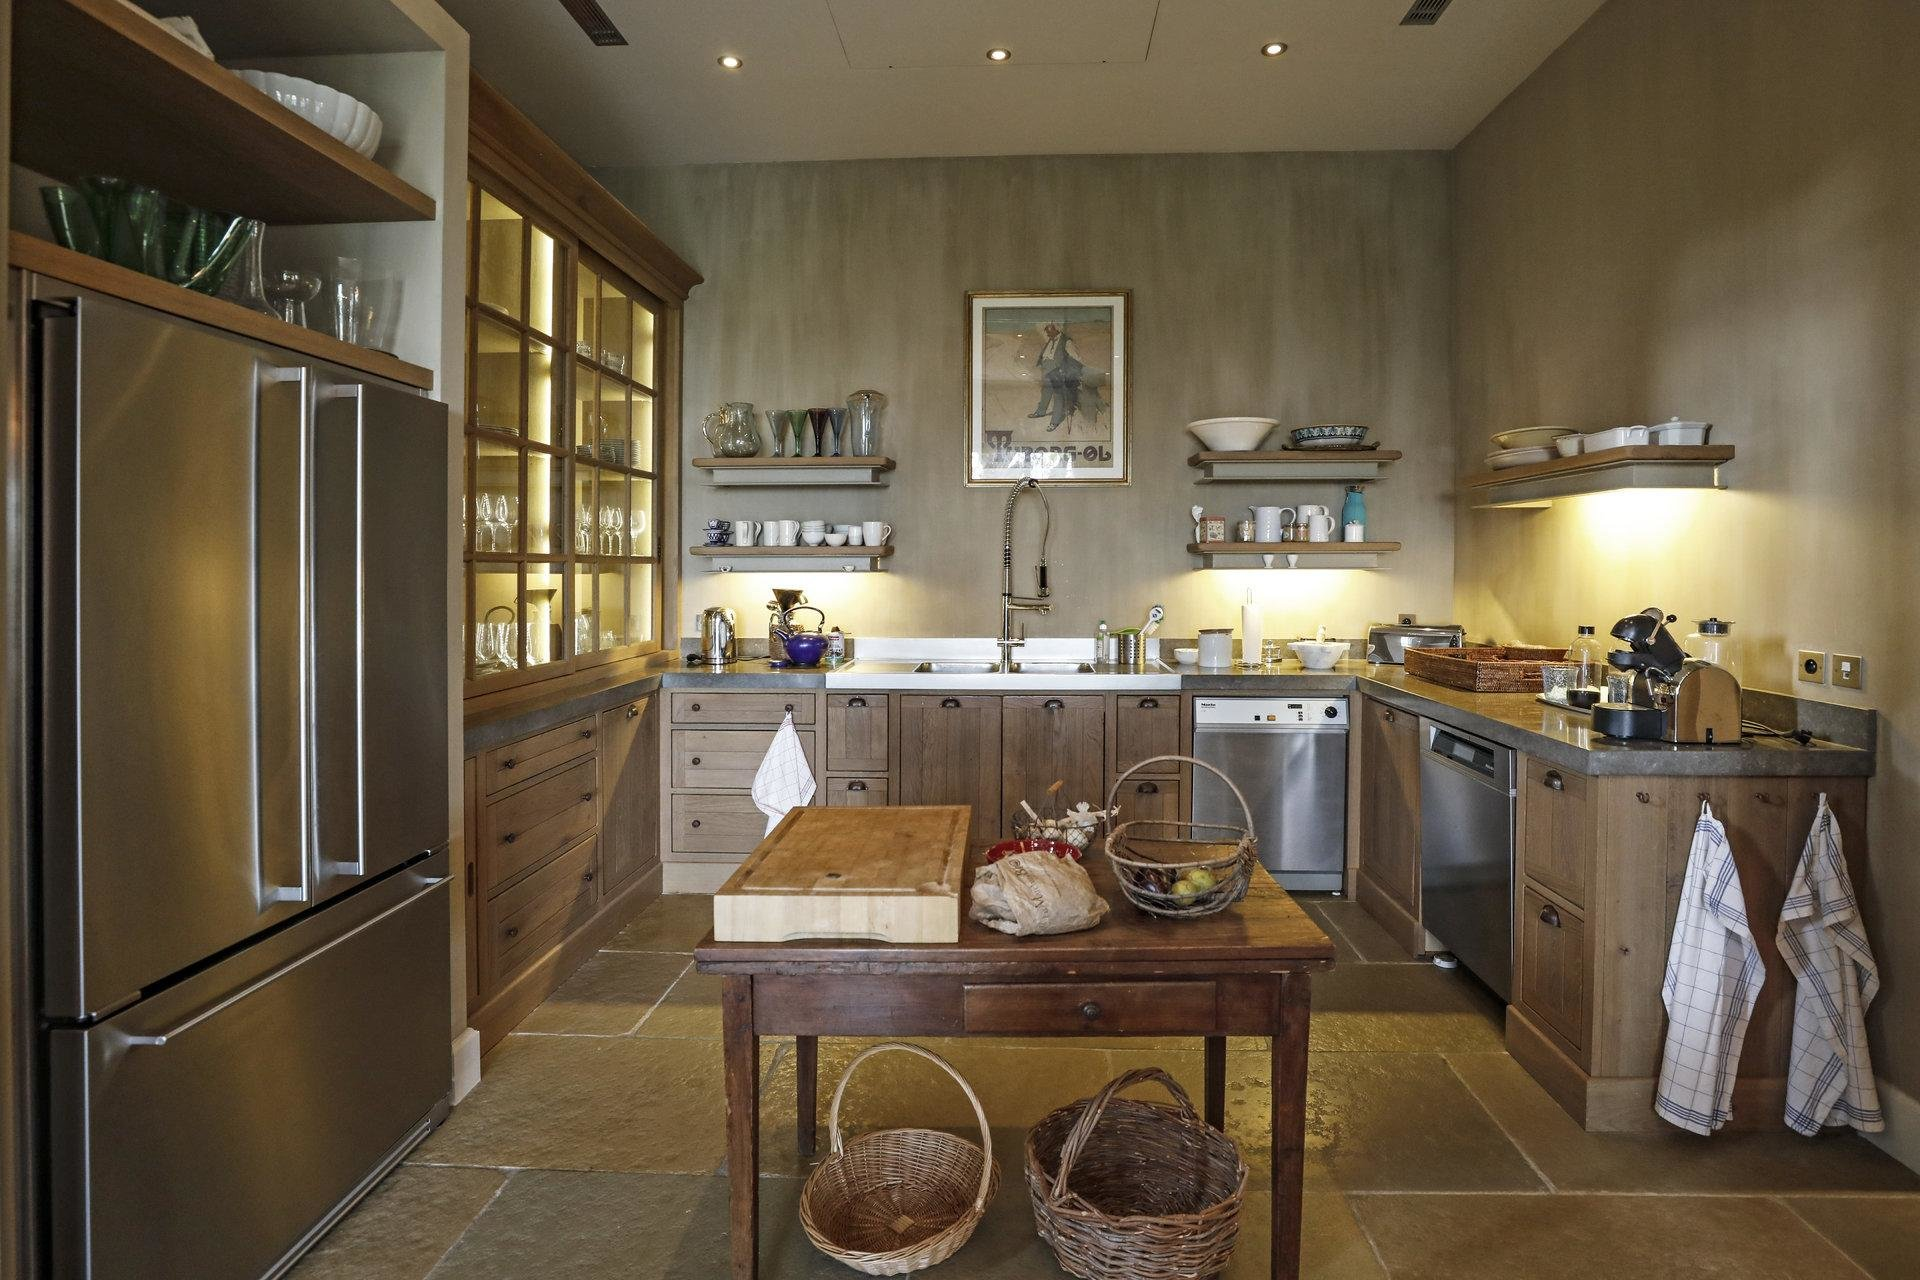 country style classic kitchen with wood tones and large refridgerator